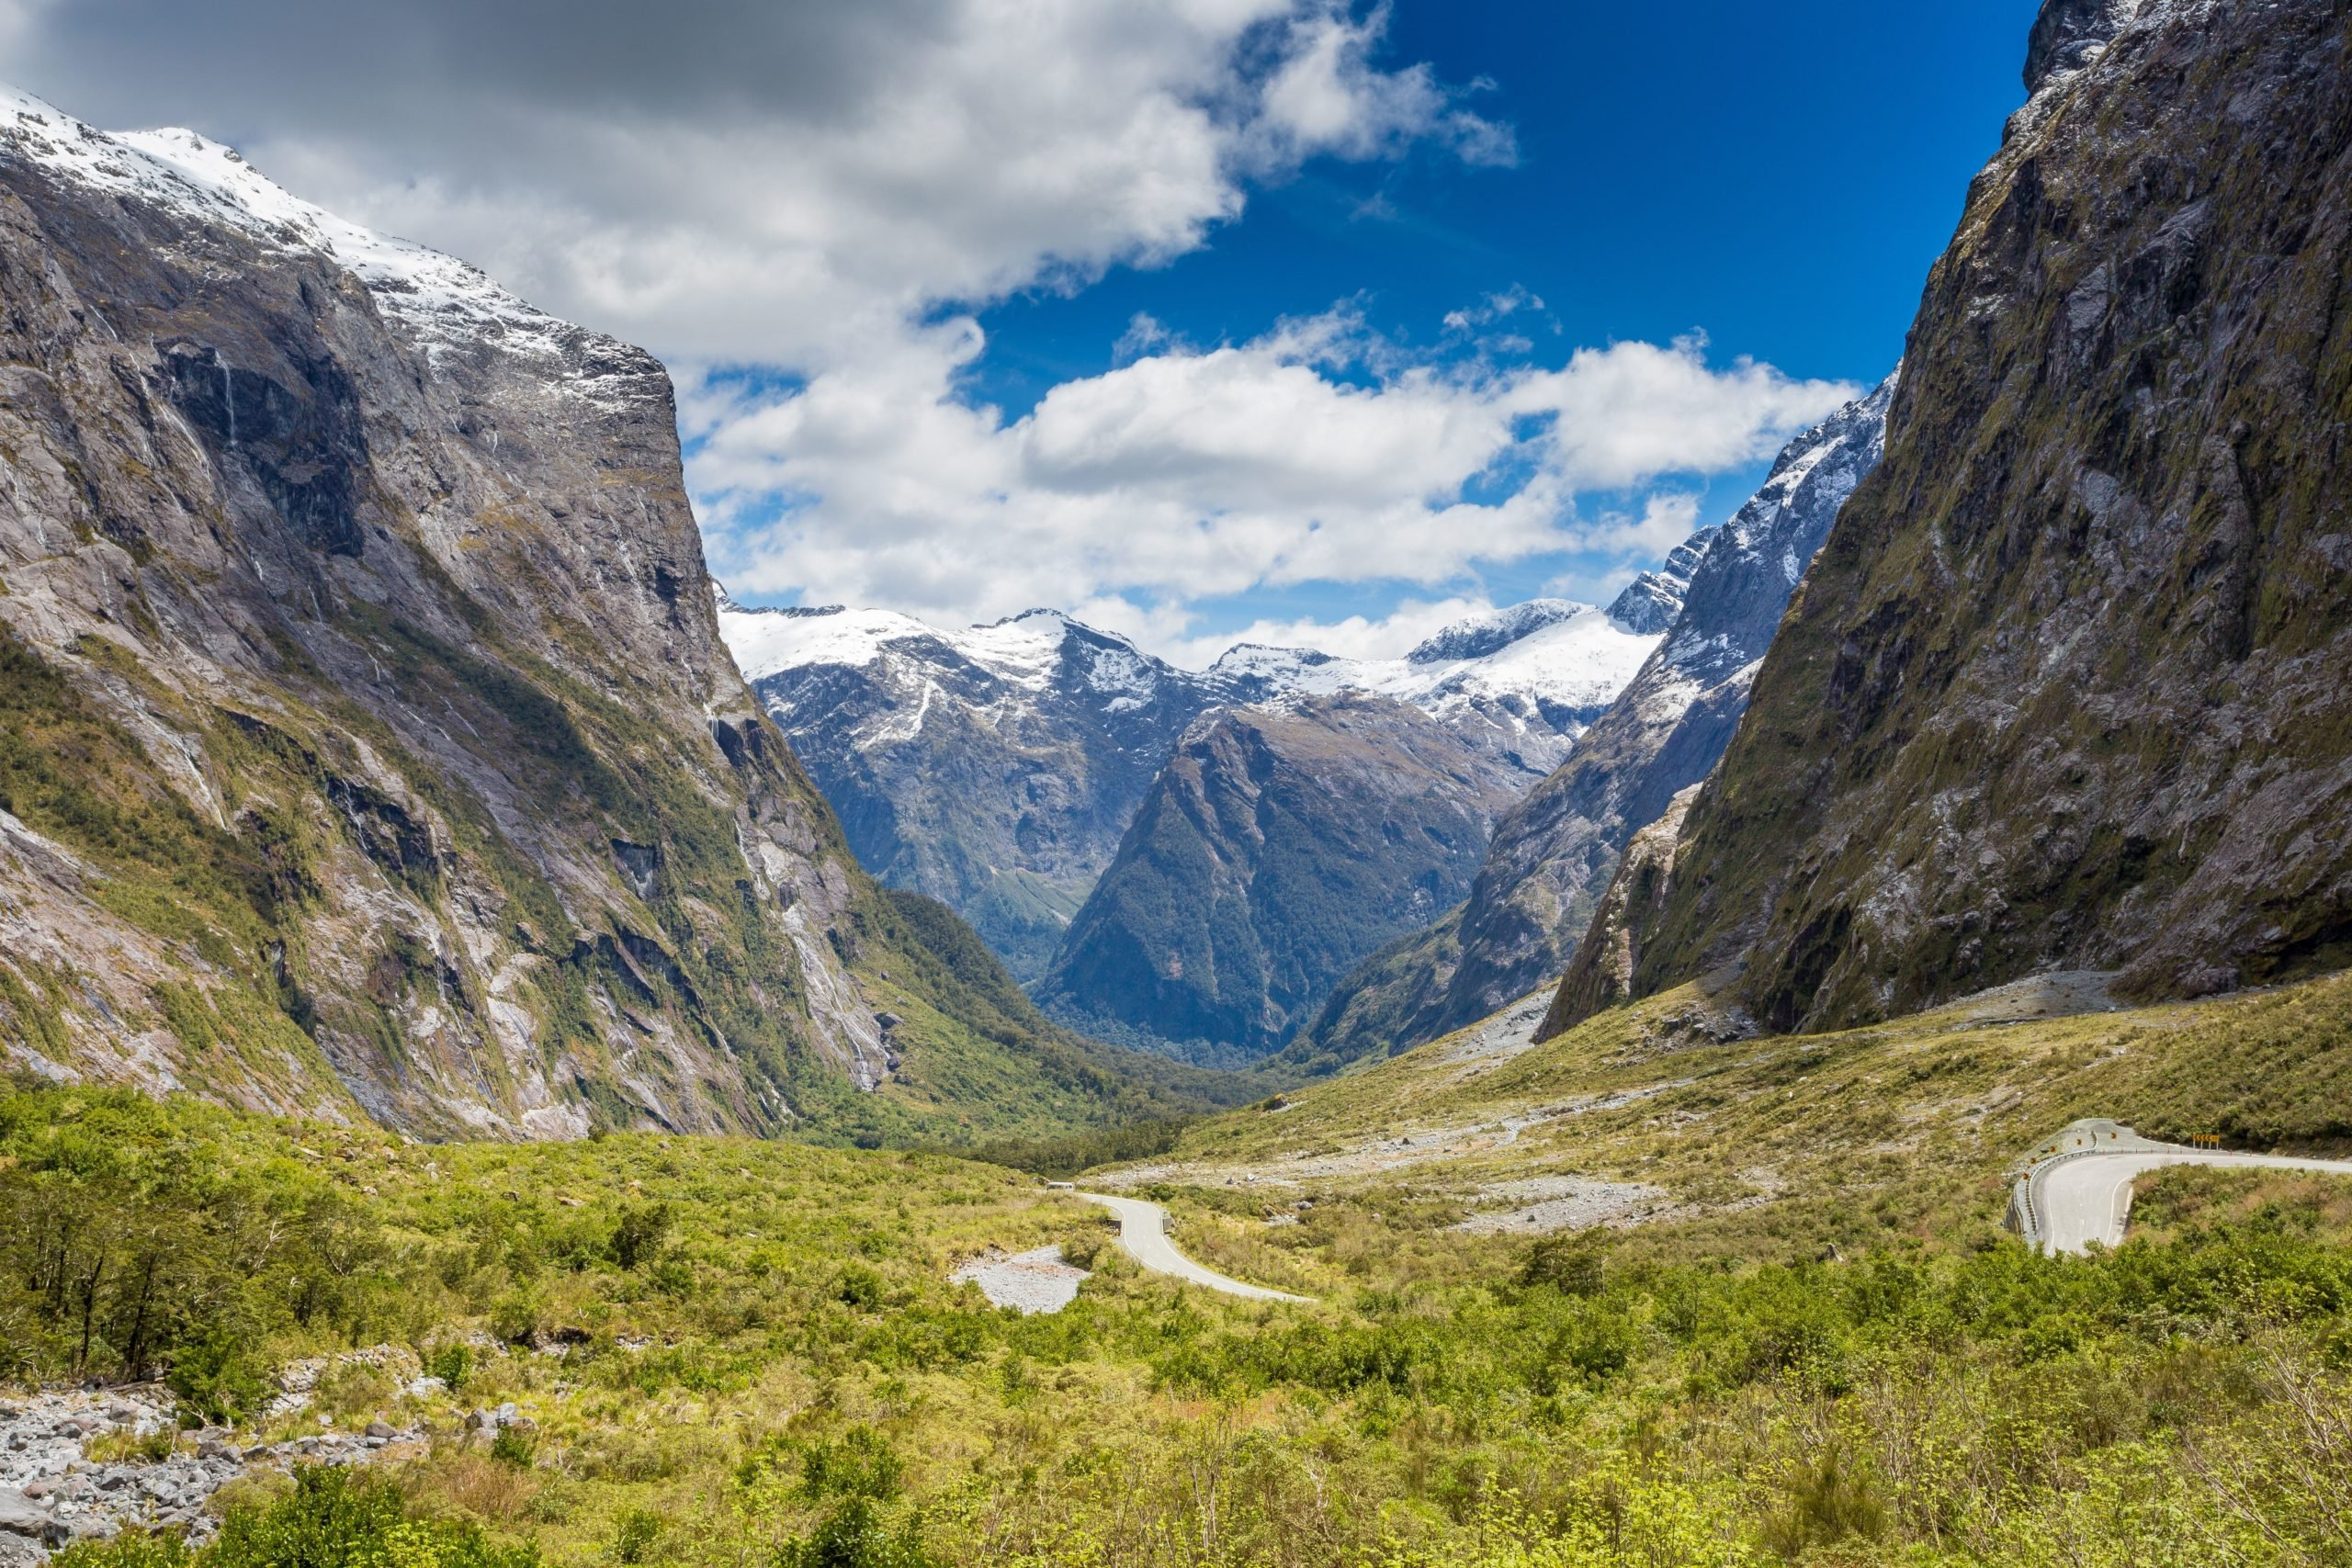 New Zealand Explorer: Walking and Scenery